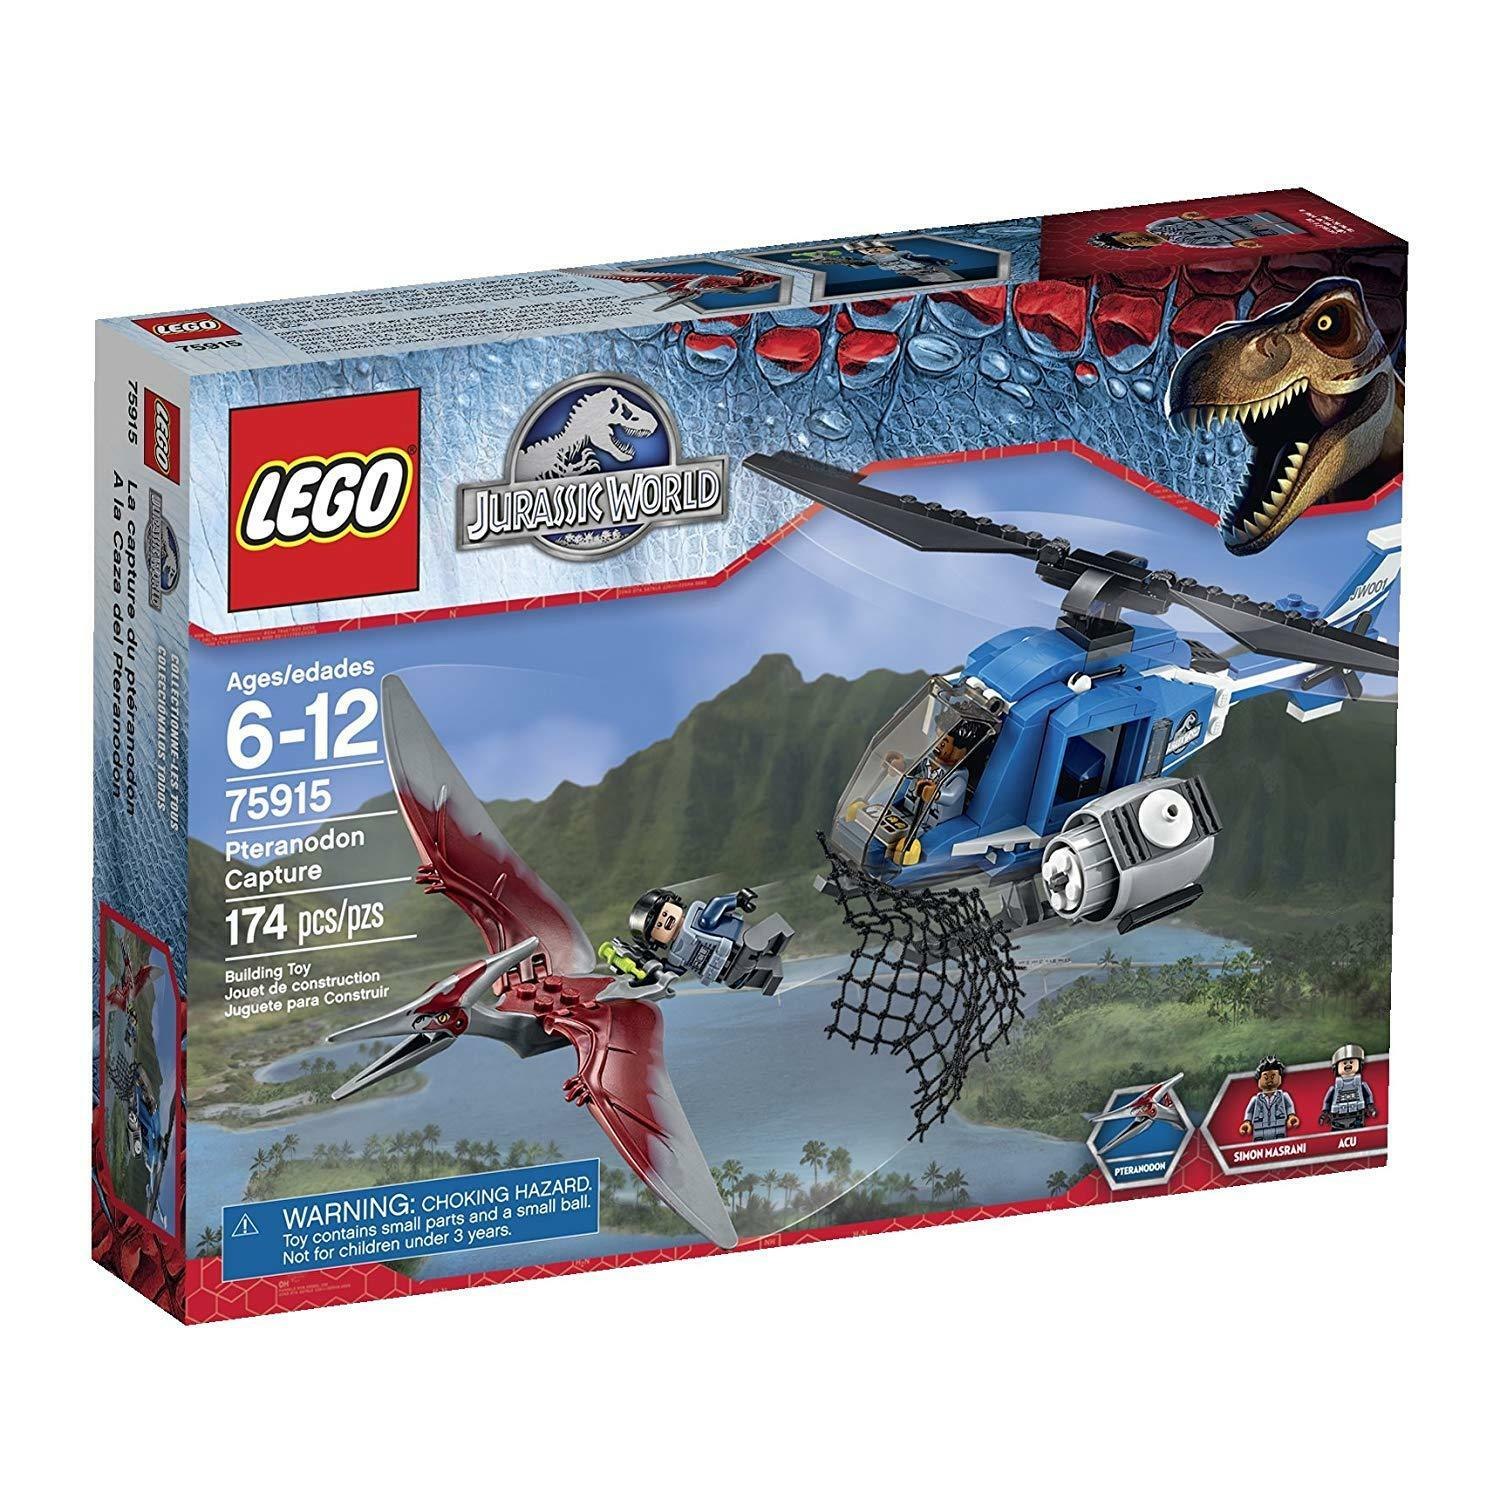 LEGO Jurassic World Pteranodon Capture (75915) BRAND NEW / FACTORY SEALED